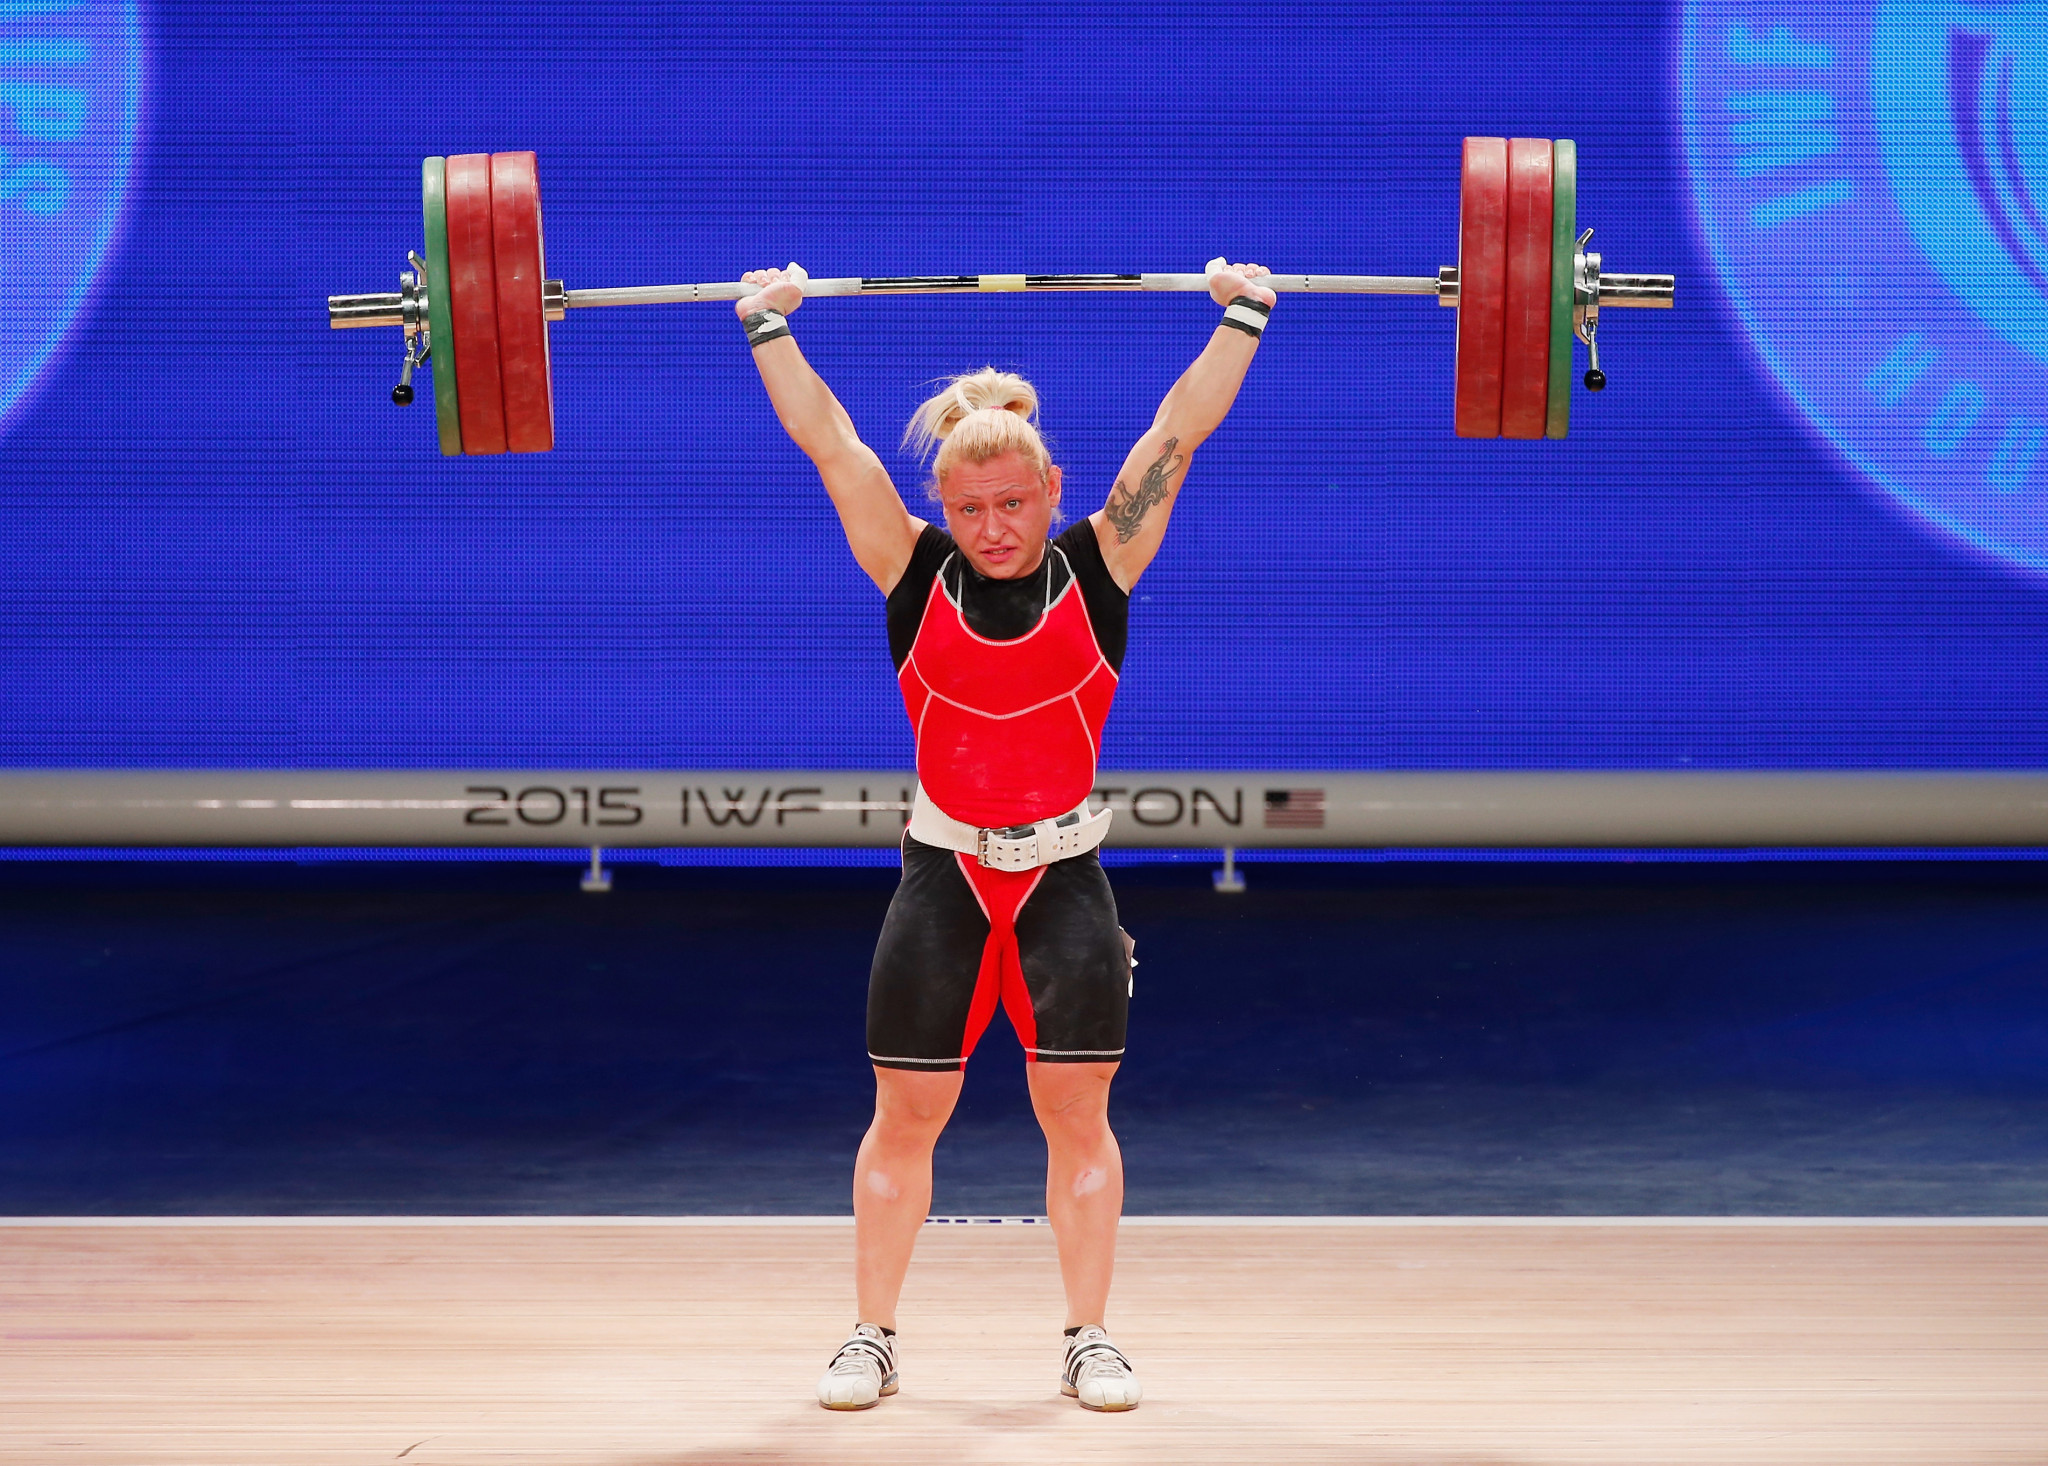 Kostova wins closely fought women's 59kg category on third day of European Weightlifting Championships